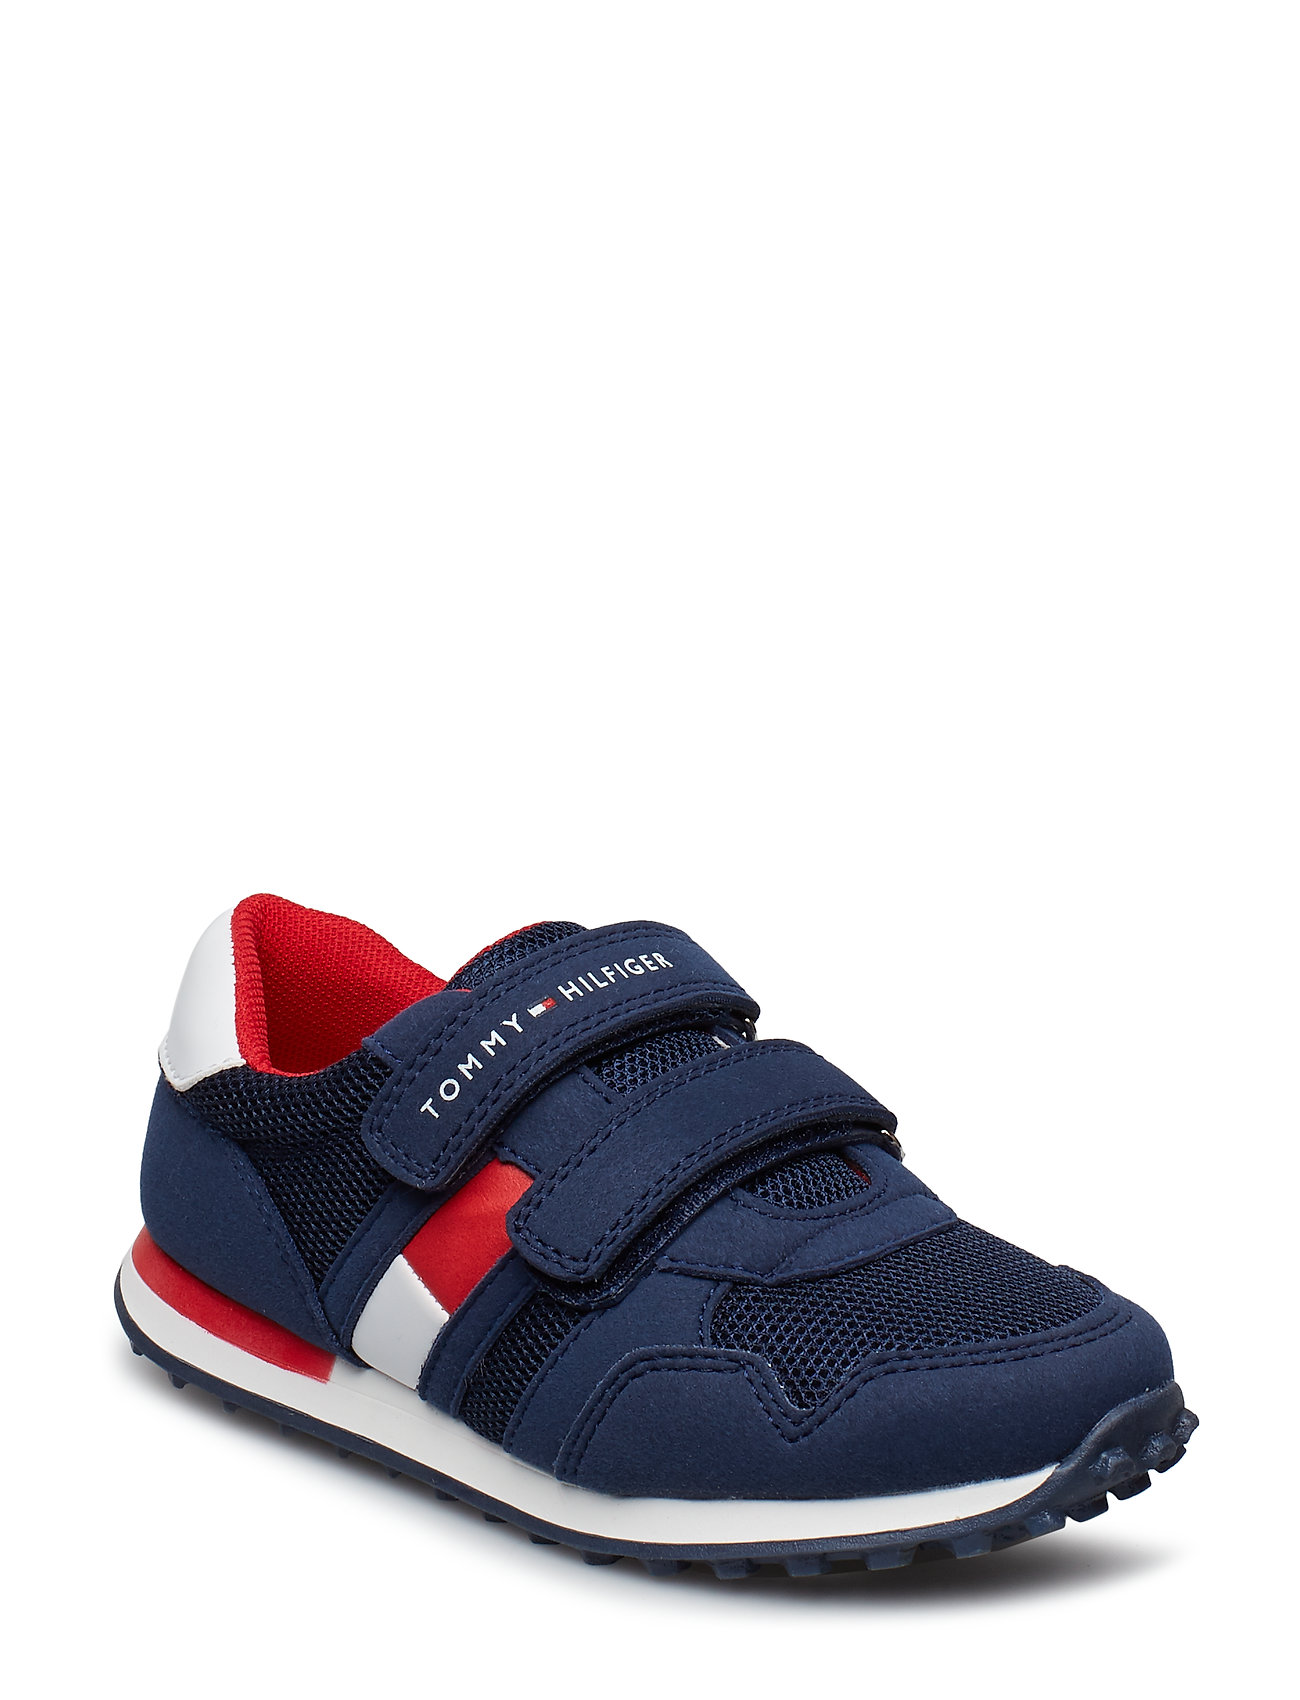 Tommy Hilfiger LOW CUT VELCRO-CAN 900,400 - BLU